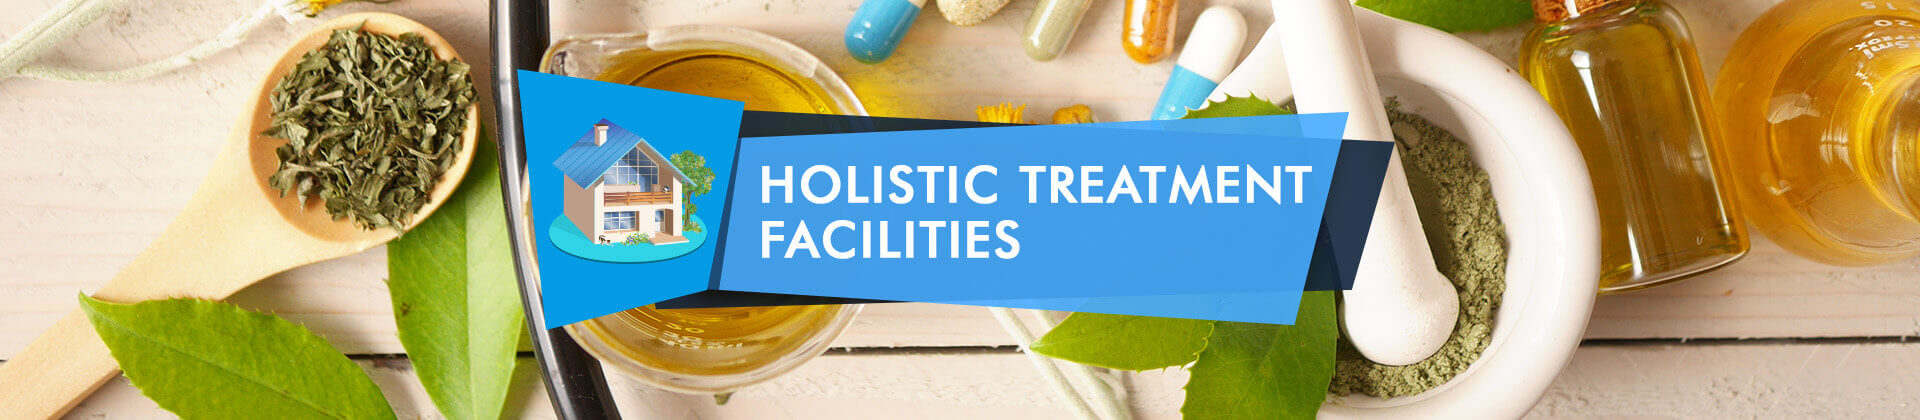 holistic treatment facilities